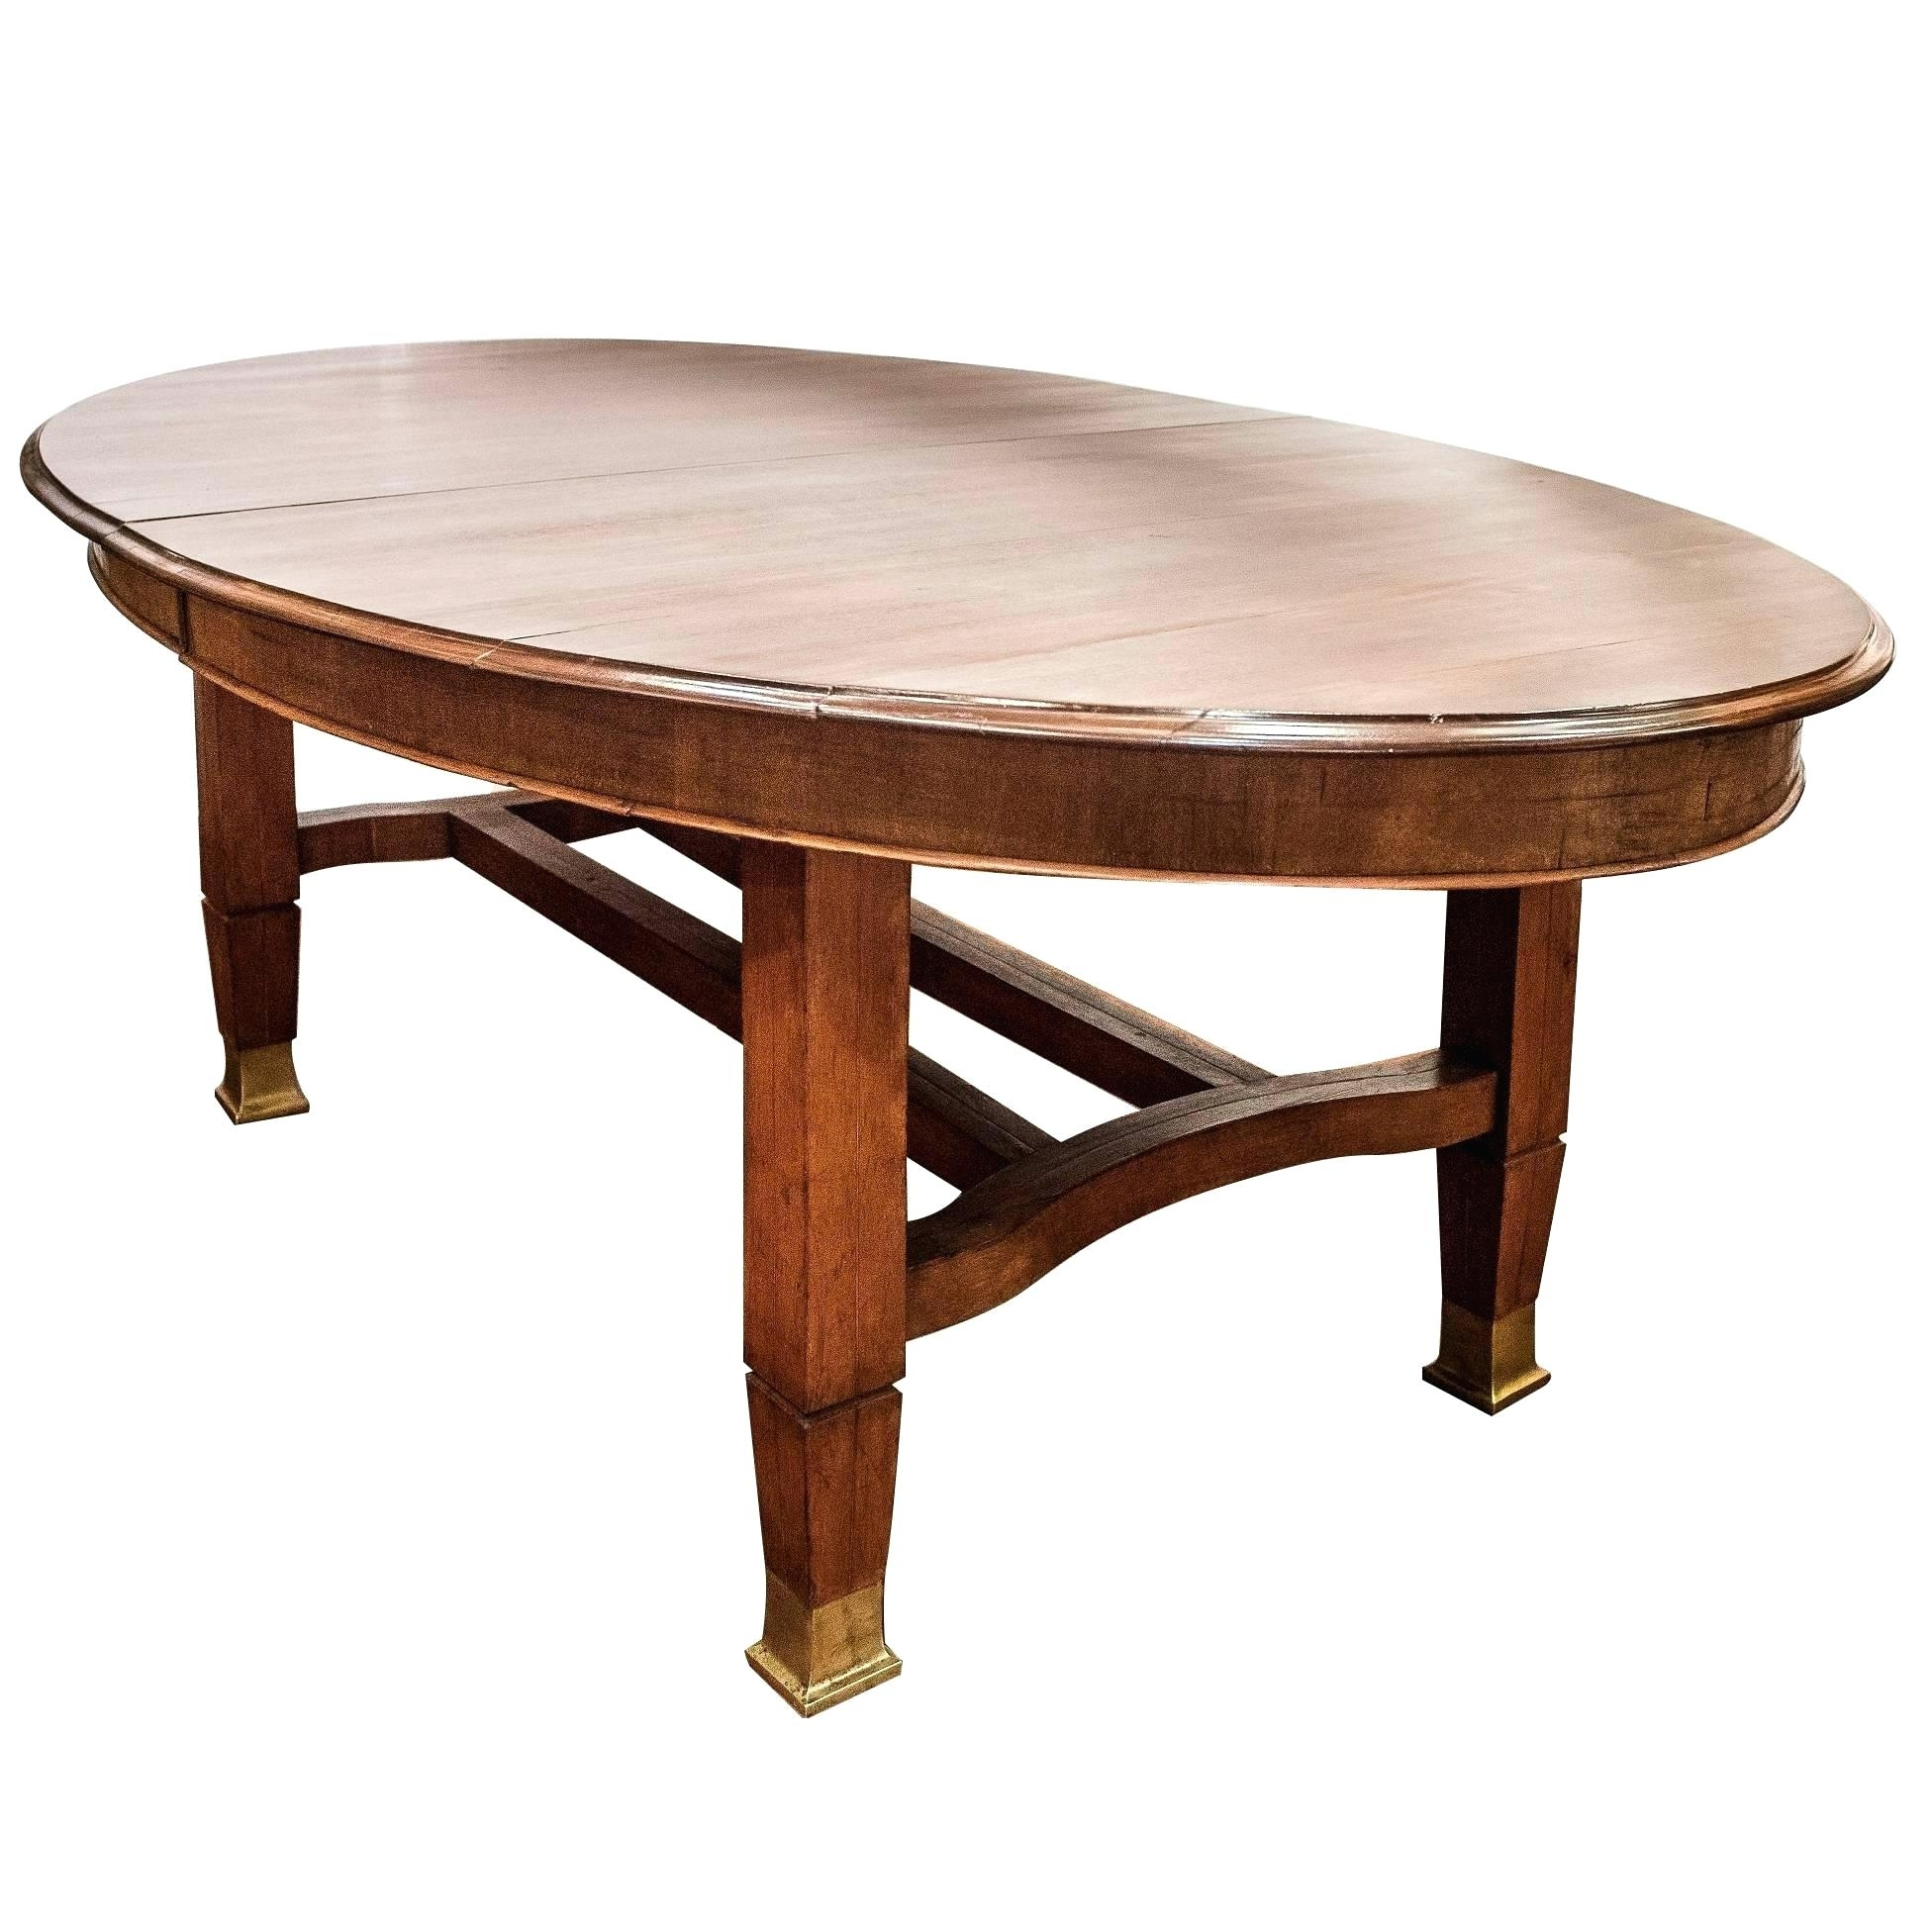 Magnolia Home English Country Oval Dining Tables Pertaining To Most Recent English Dining Table Magnolia Homeroom Country Oval Oak And (View 14 of 25)